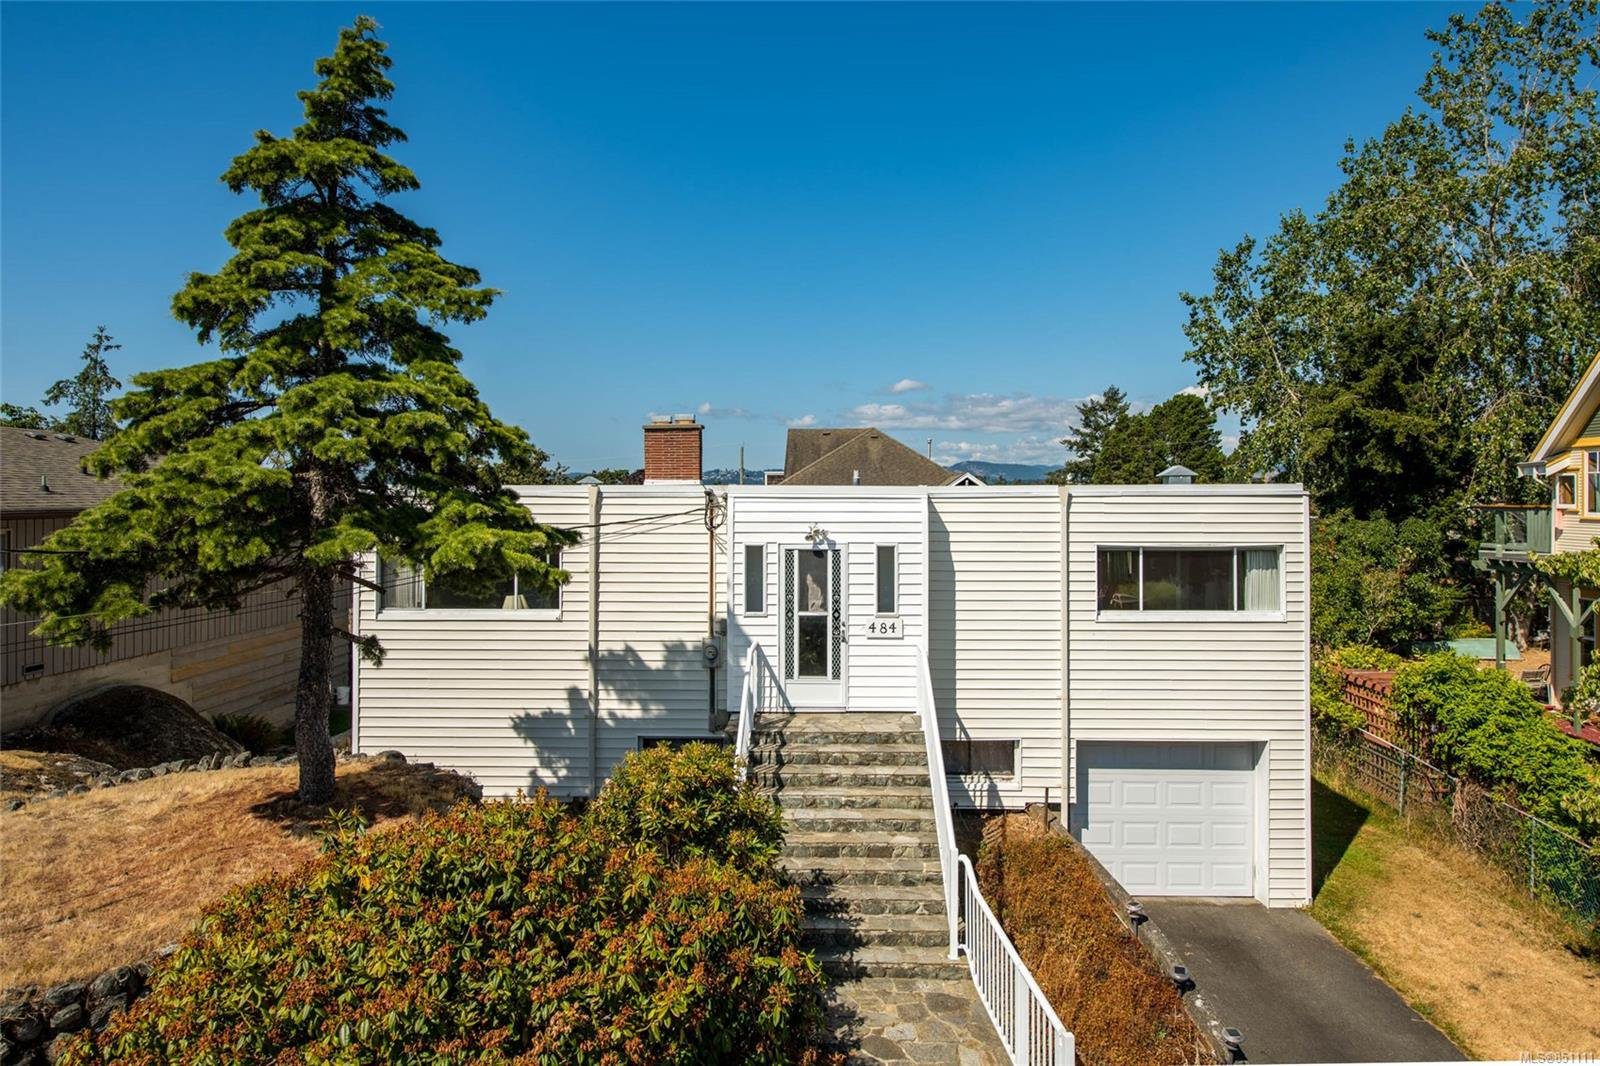 Main Photo: 484 Admirals Rd in : Es Saxe Point Single Family Detached for sale (Esquimalt)  : MLS®# 851111